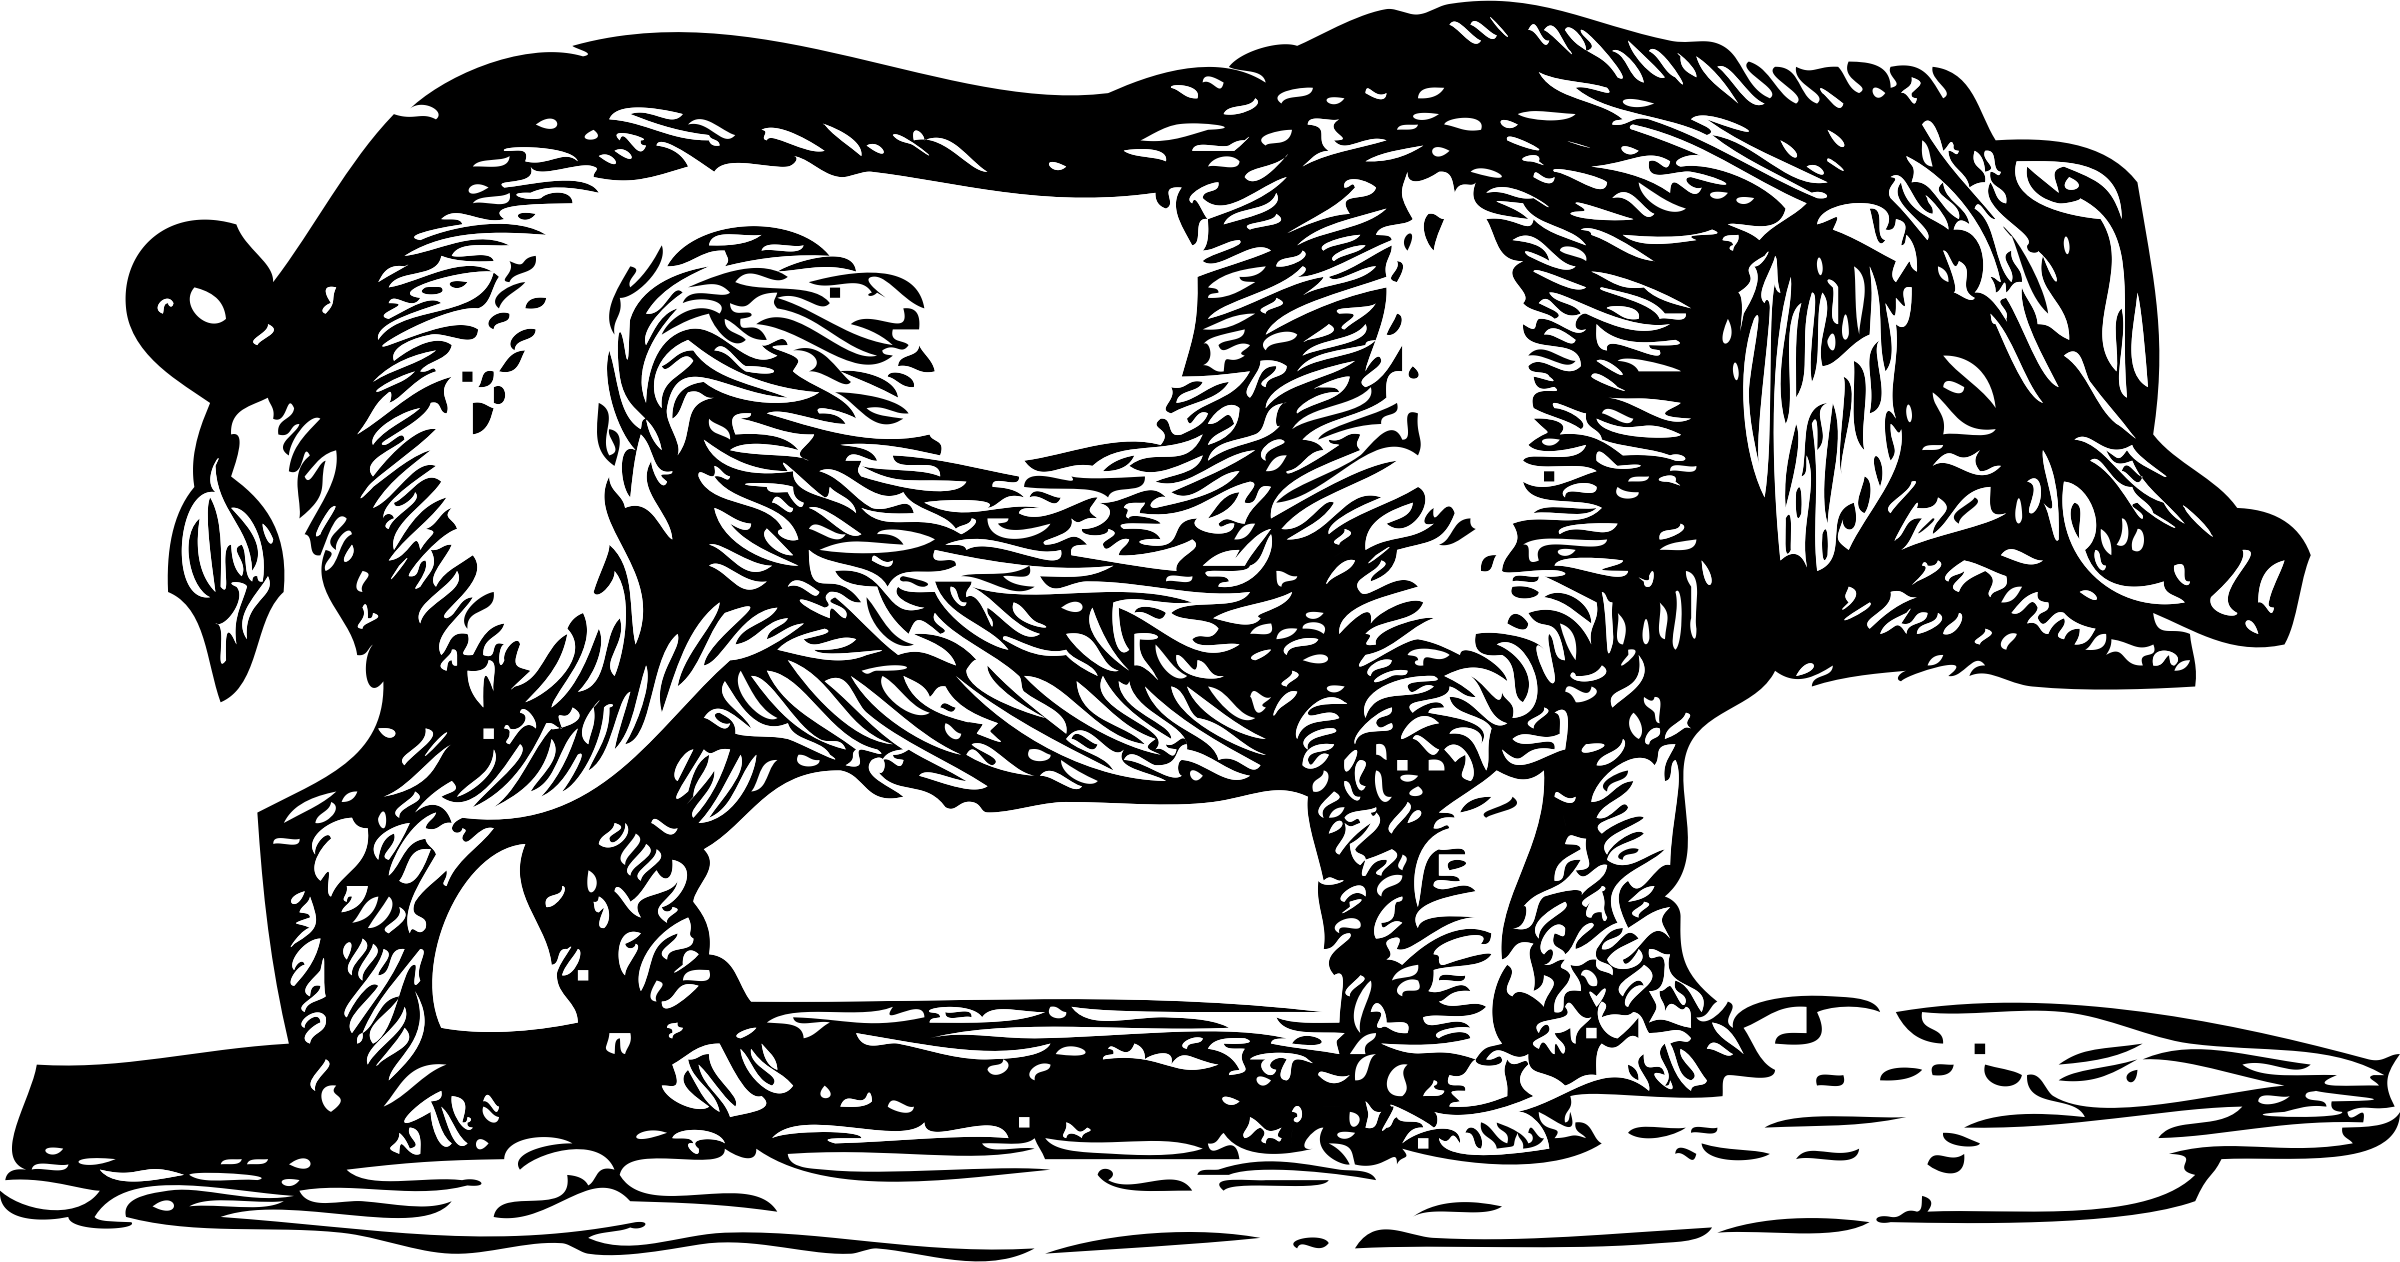 Hog clipart black and white. Big image png